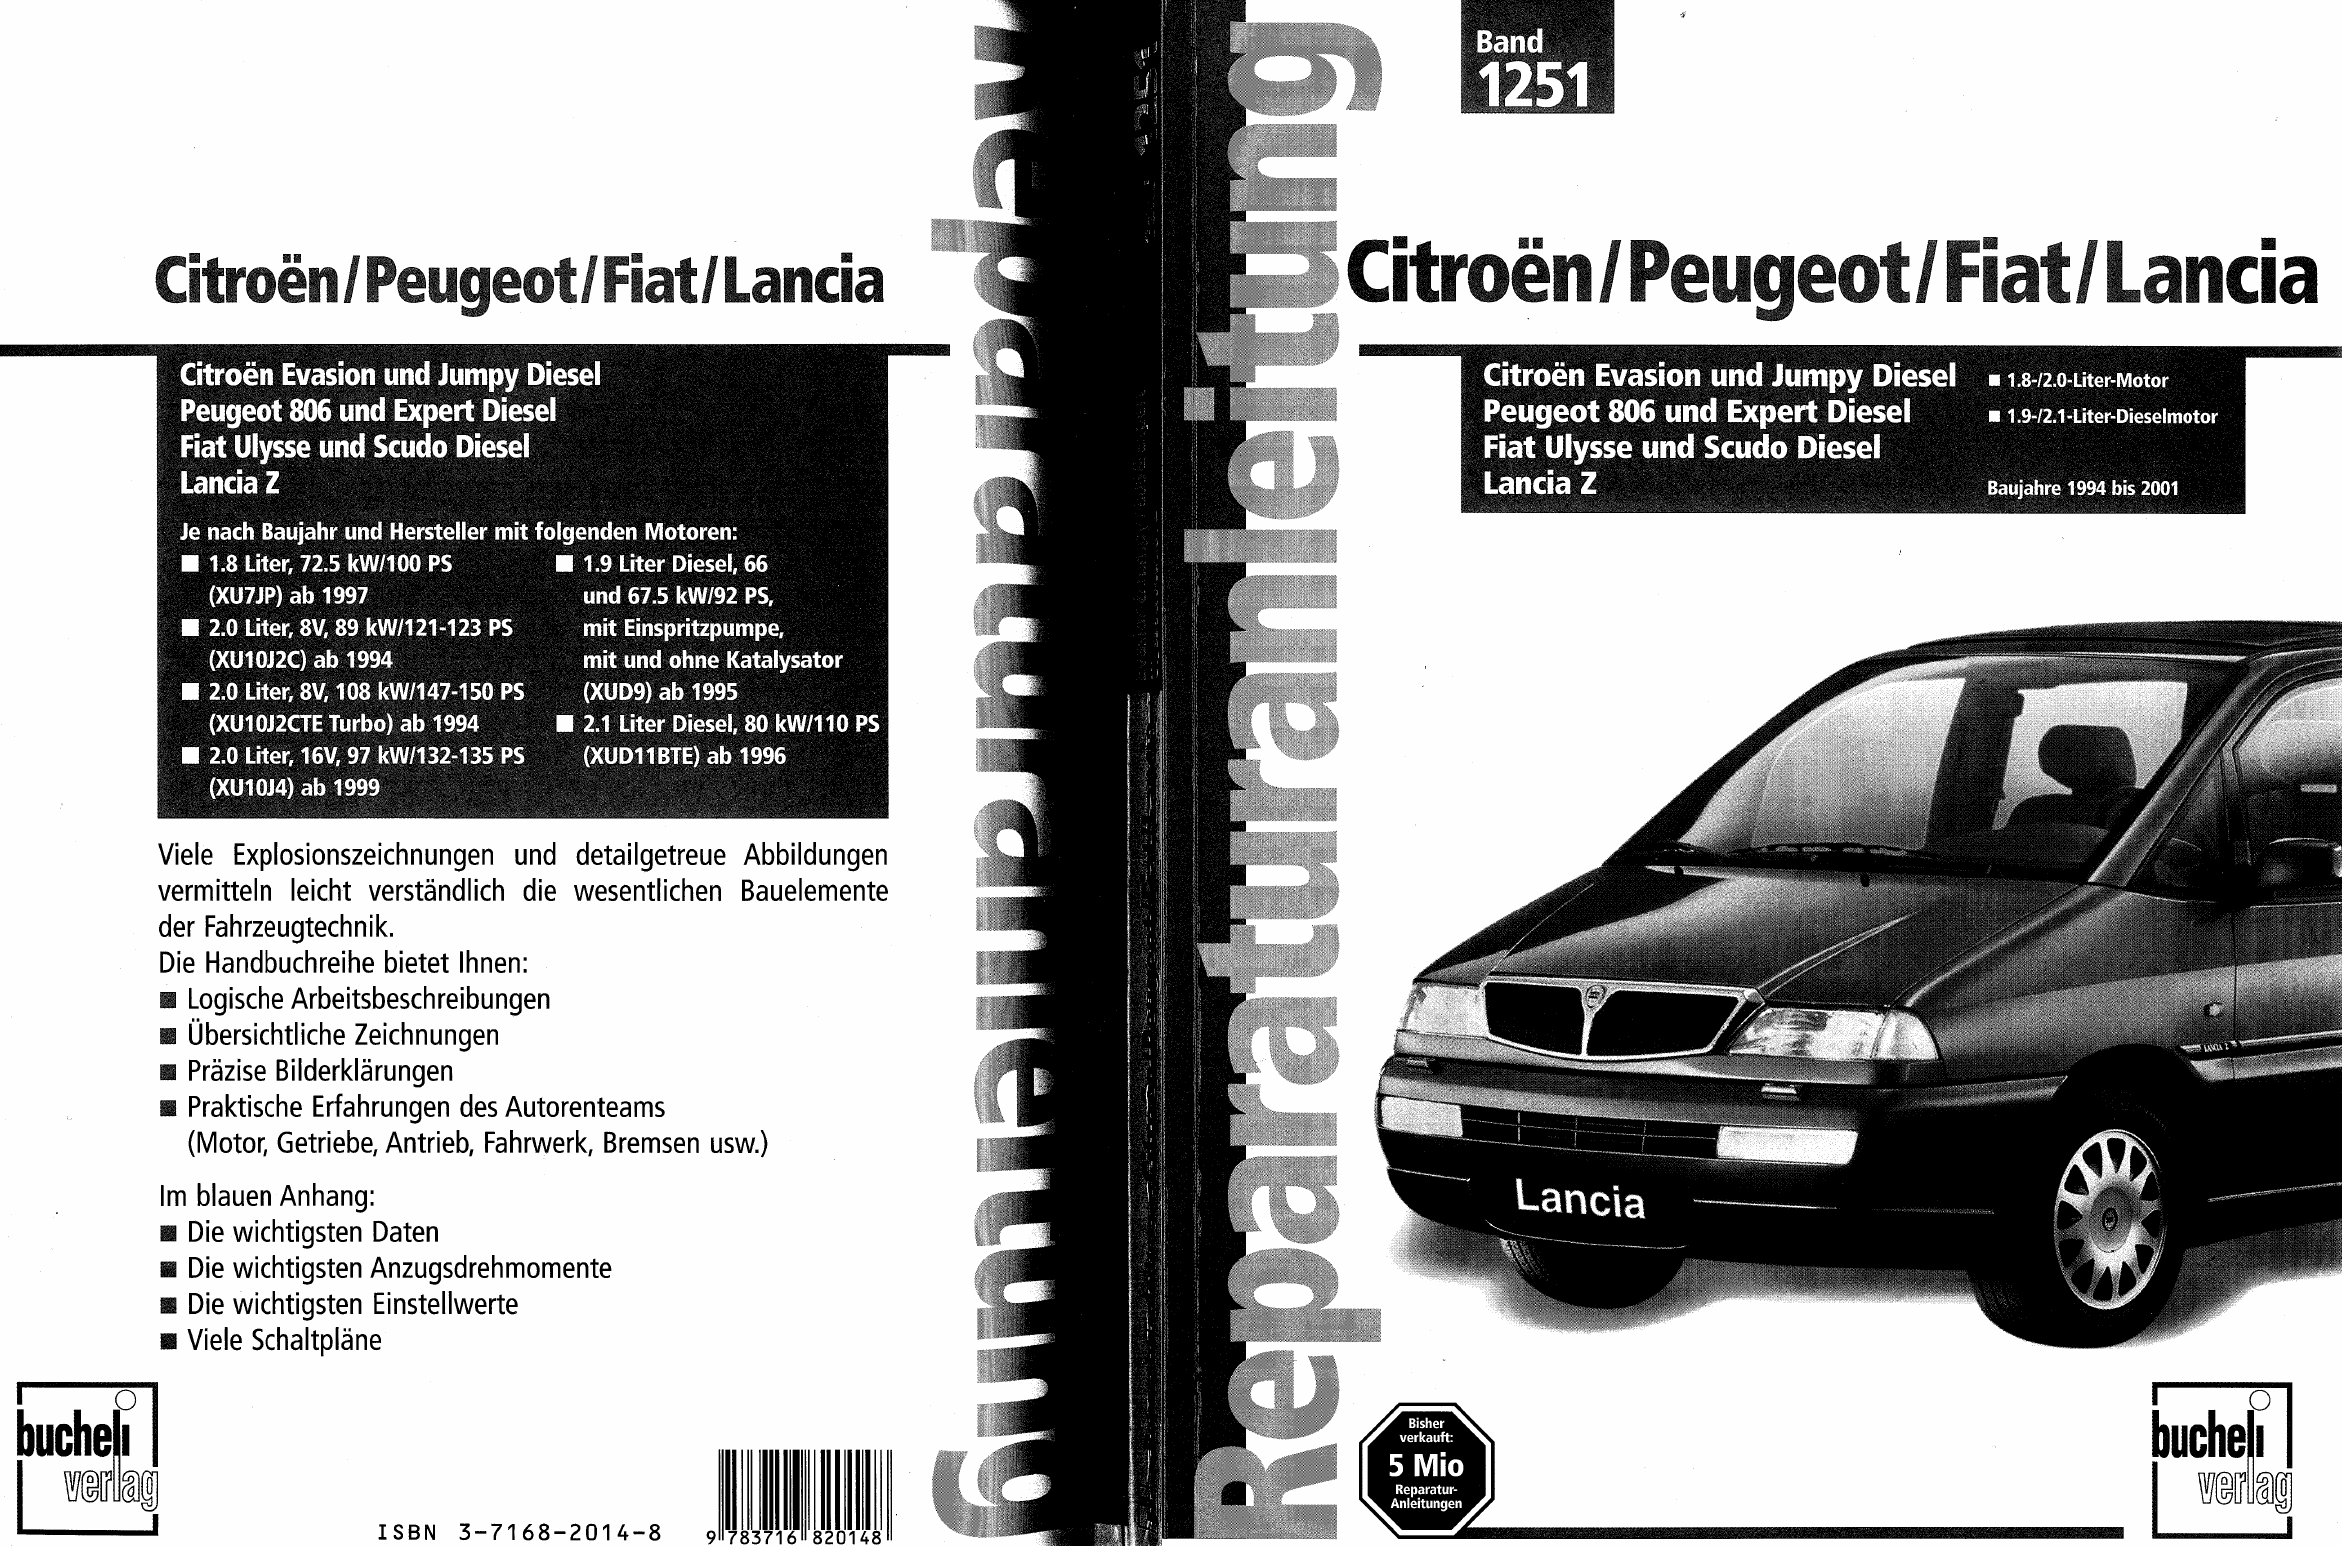 peugeot 806 workshop manual german pdf rh manuals co Peugeot 908 Peugeot 607